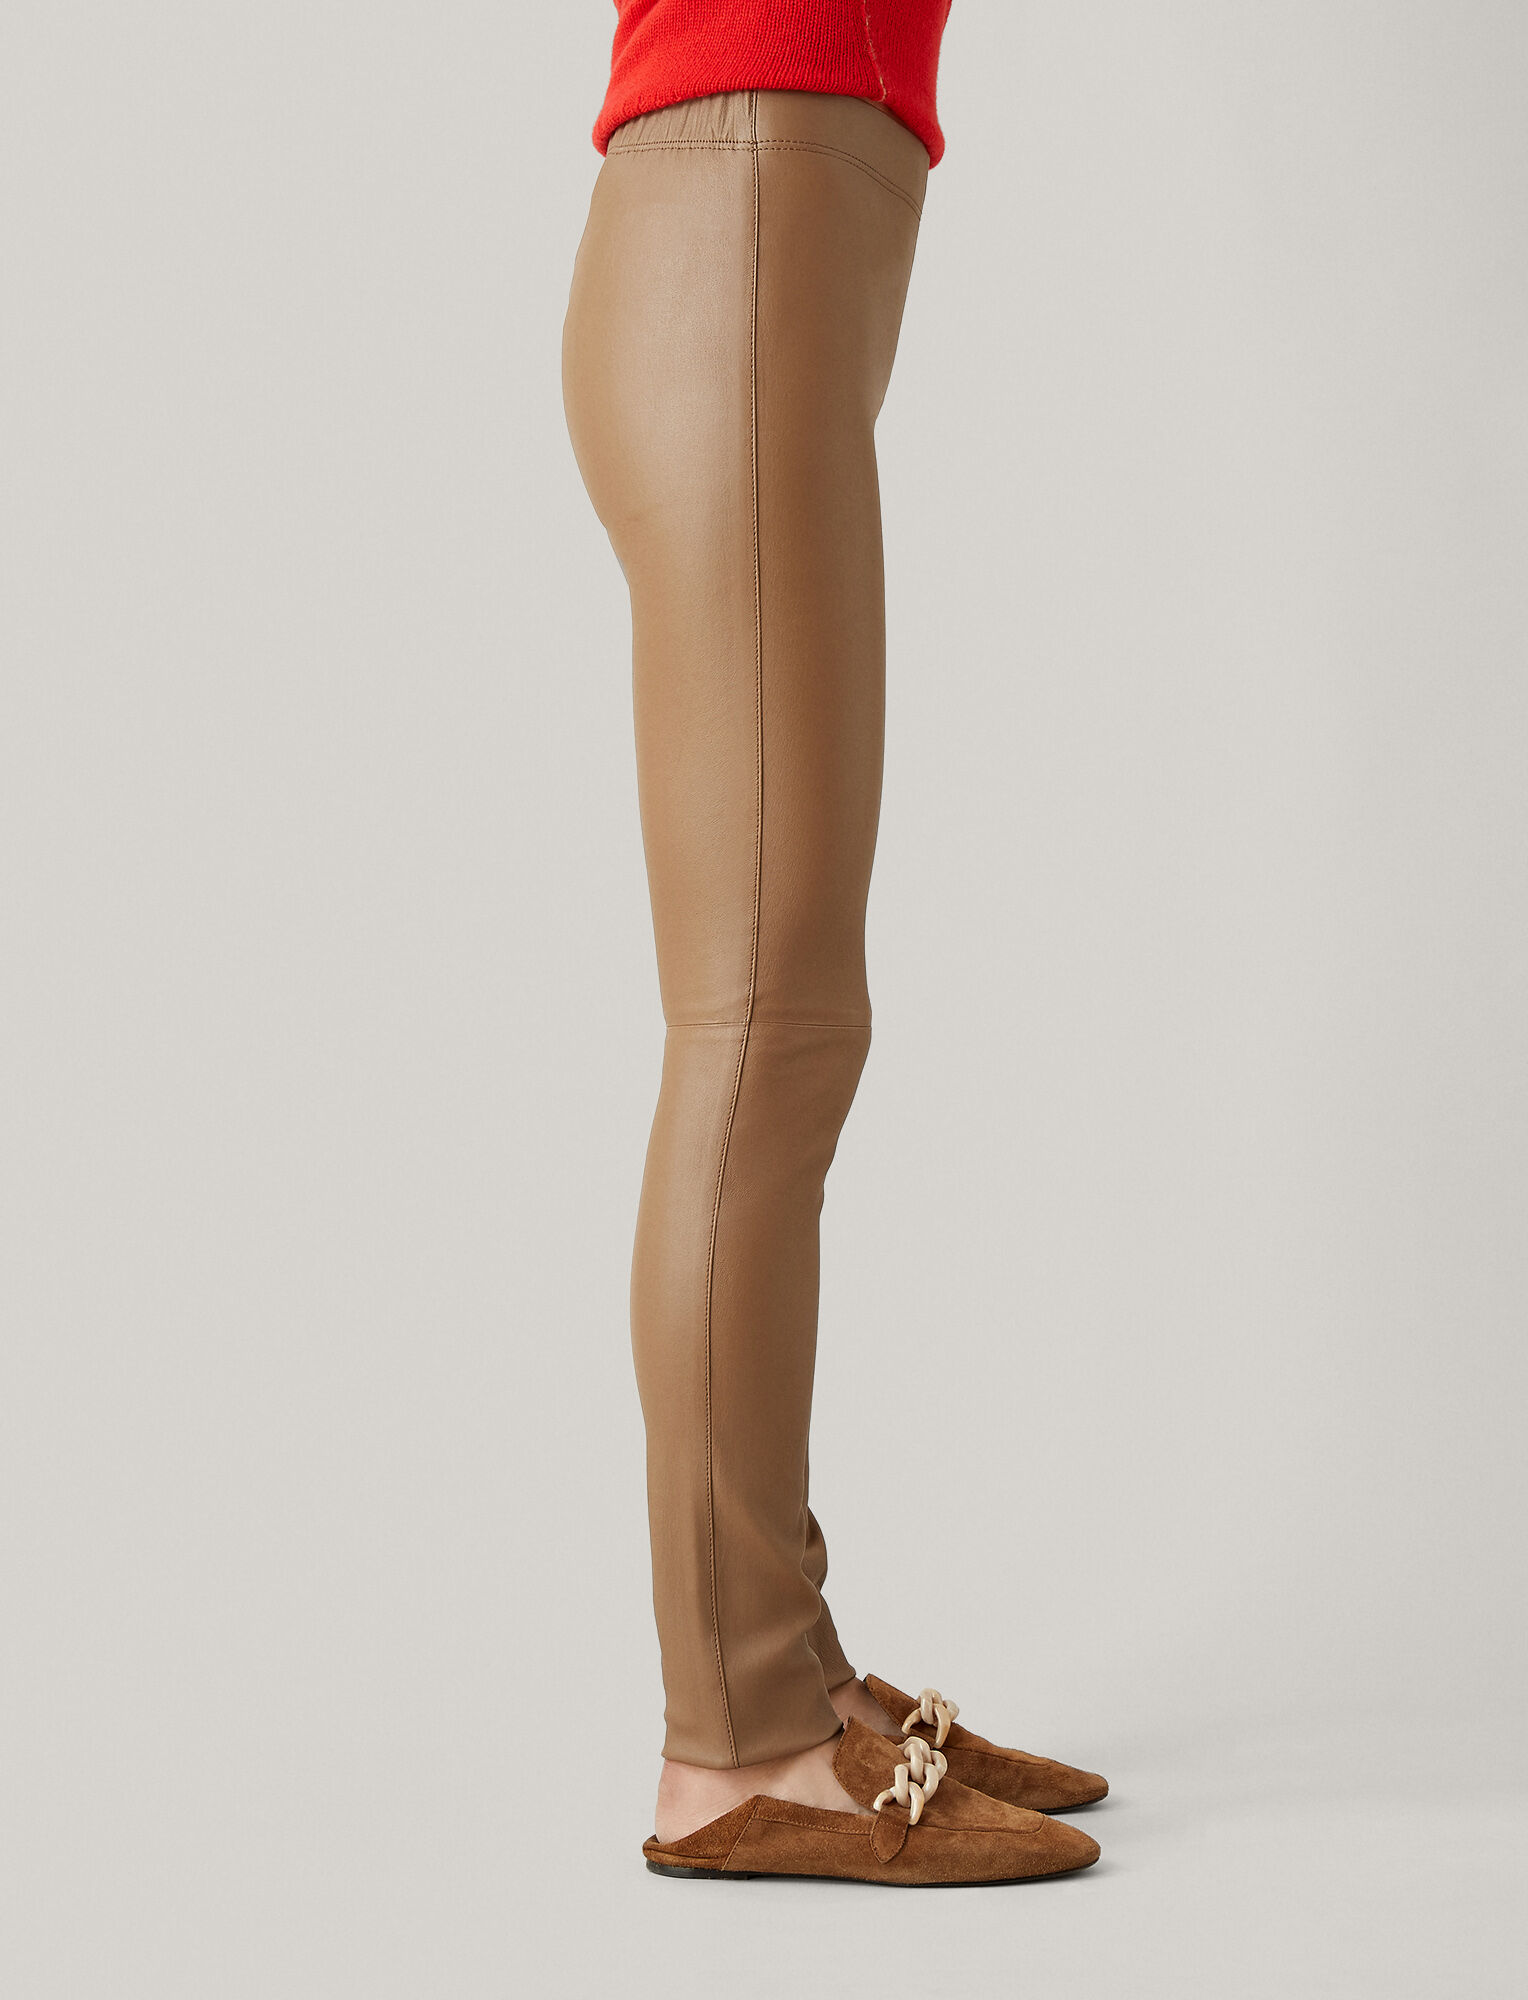 Joseph, Stretch Leather Legging, in TOBACCO